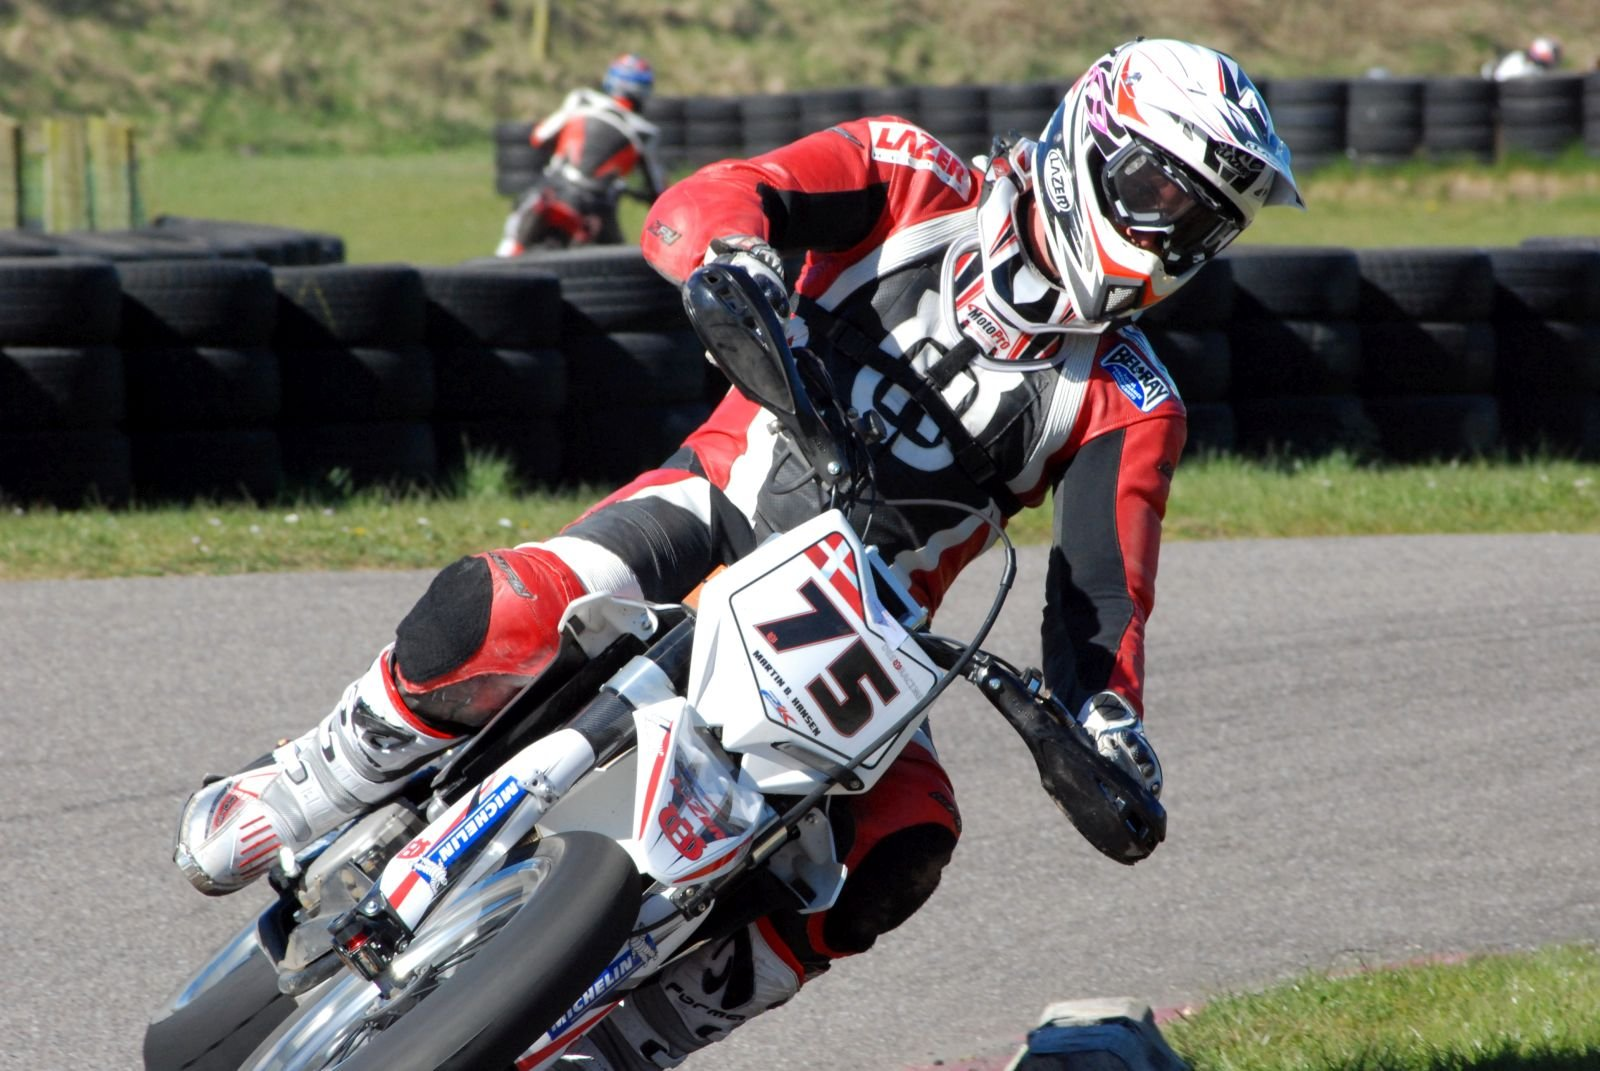 Supermotard_DM_ALS_2009 (24)